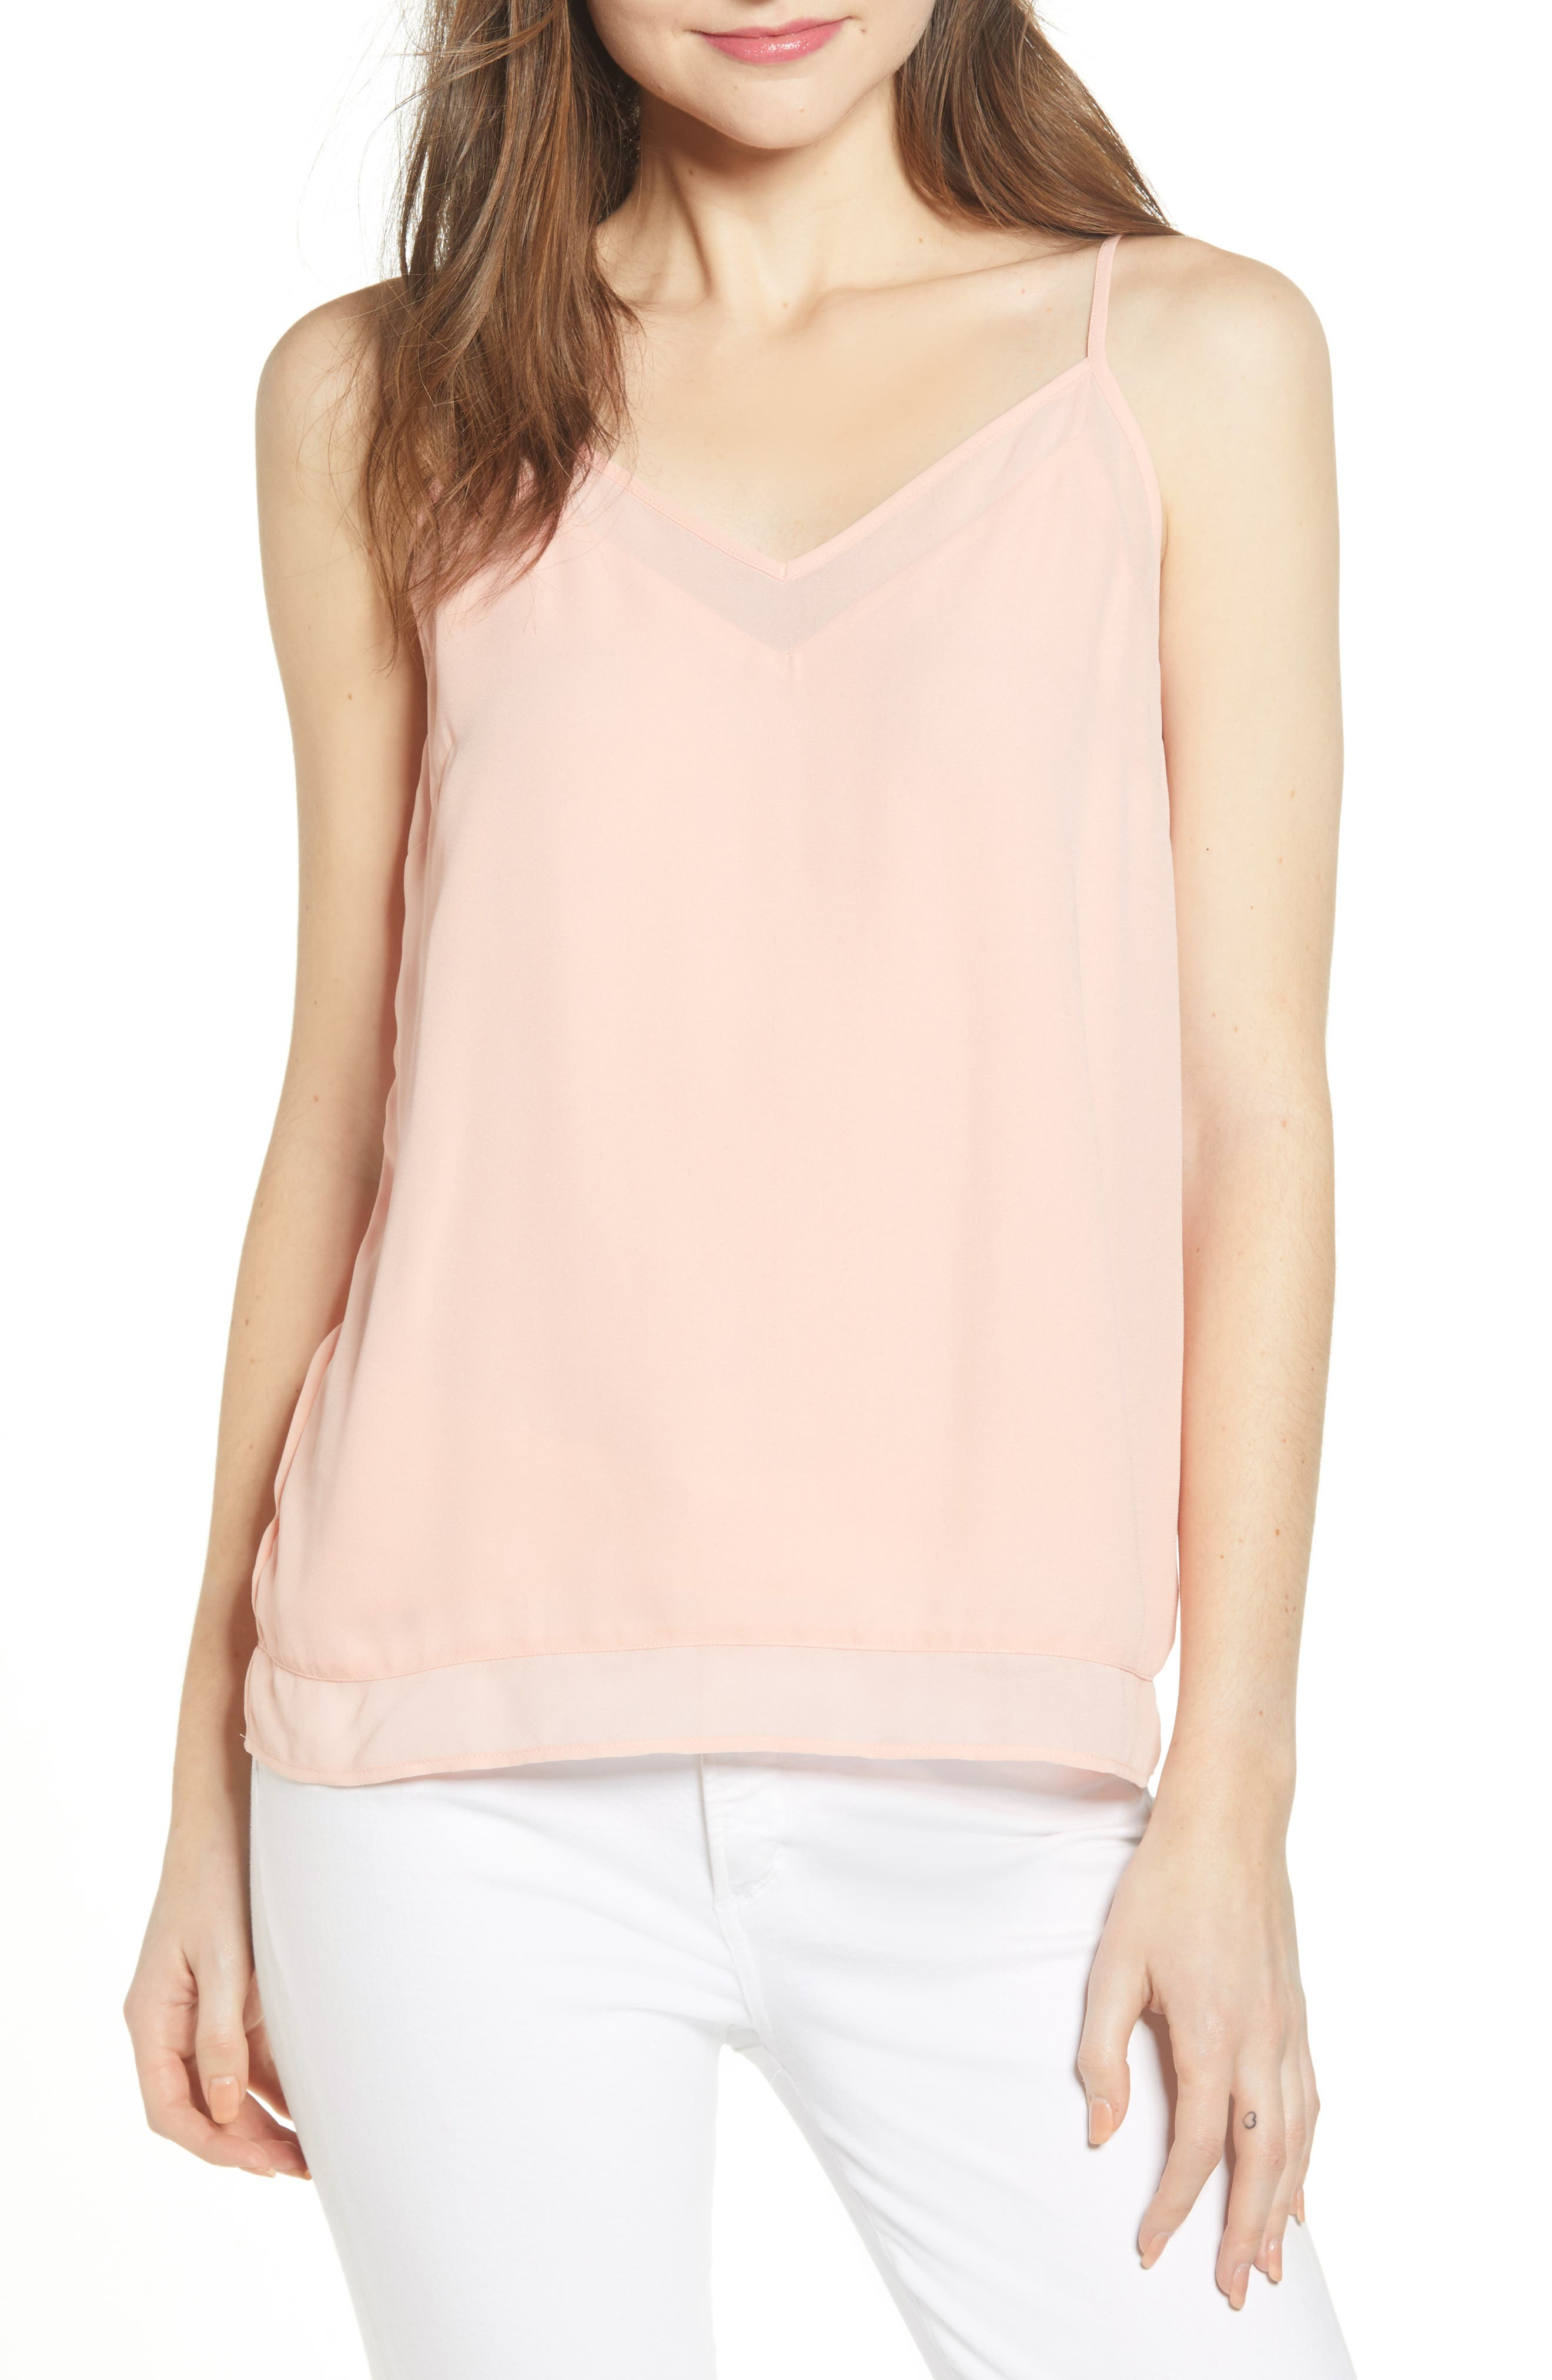 Chelsea28 Illusion Camisole, Pink